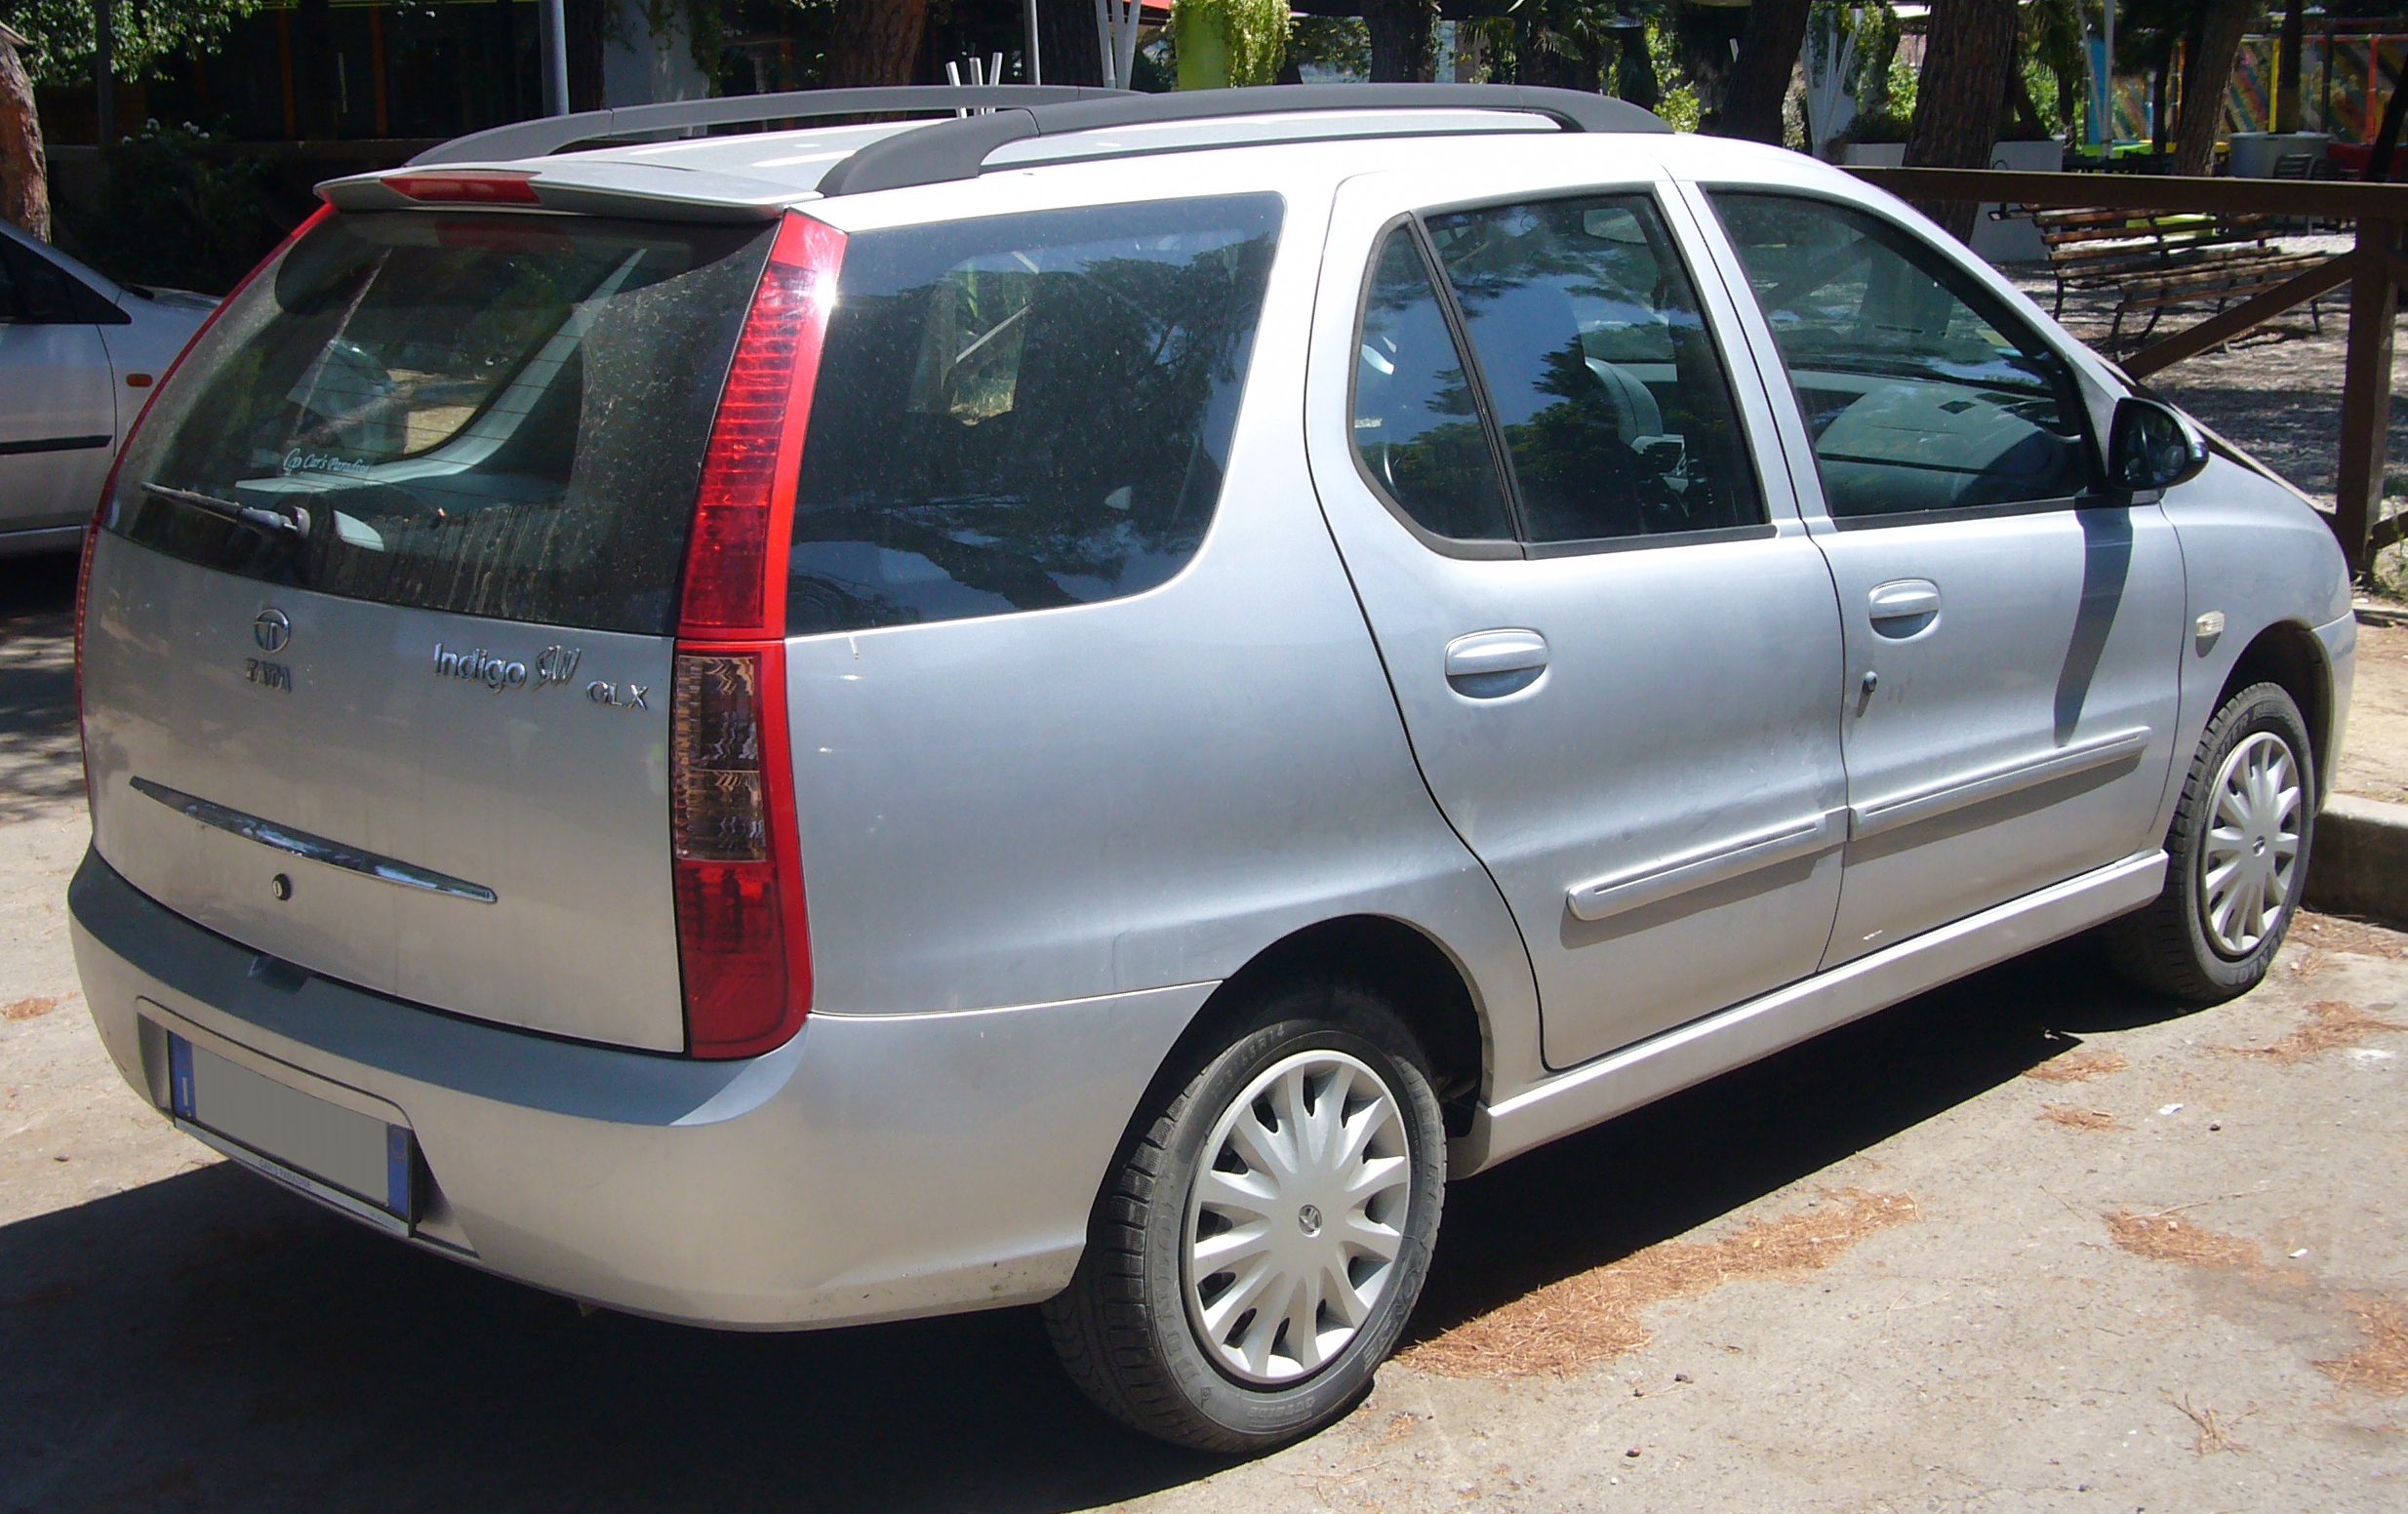 File:Tata Indigo SW (Marina) rear quarter.jpg - Wikimedia Commons